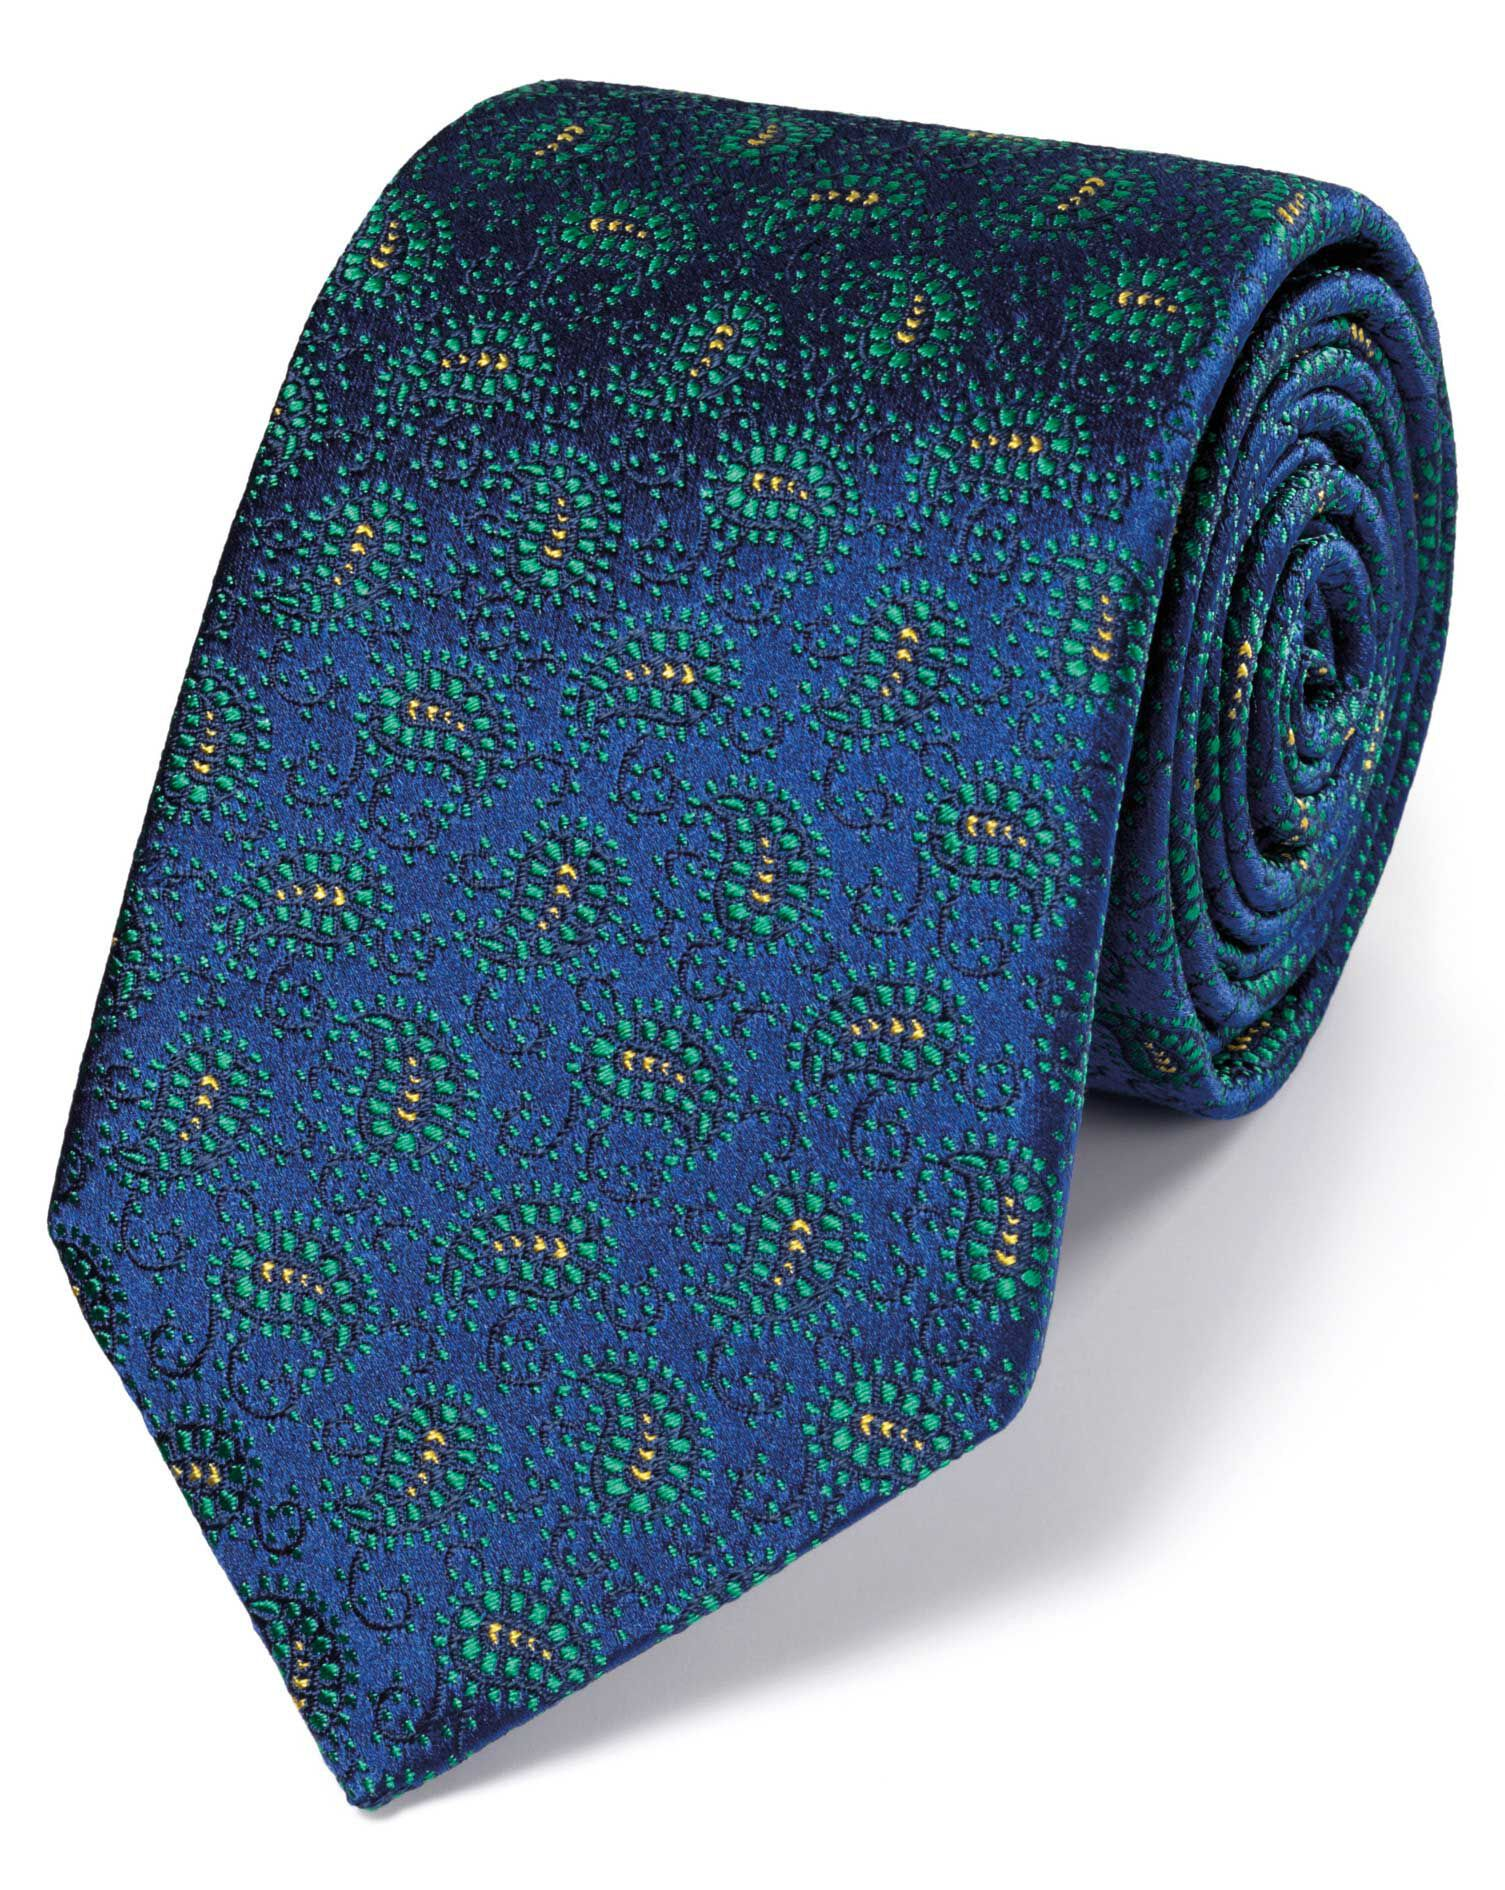 Blue and Green Silk Vintage Paisley Luxury Tie Size OSFA by Charles Tyrwhitt